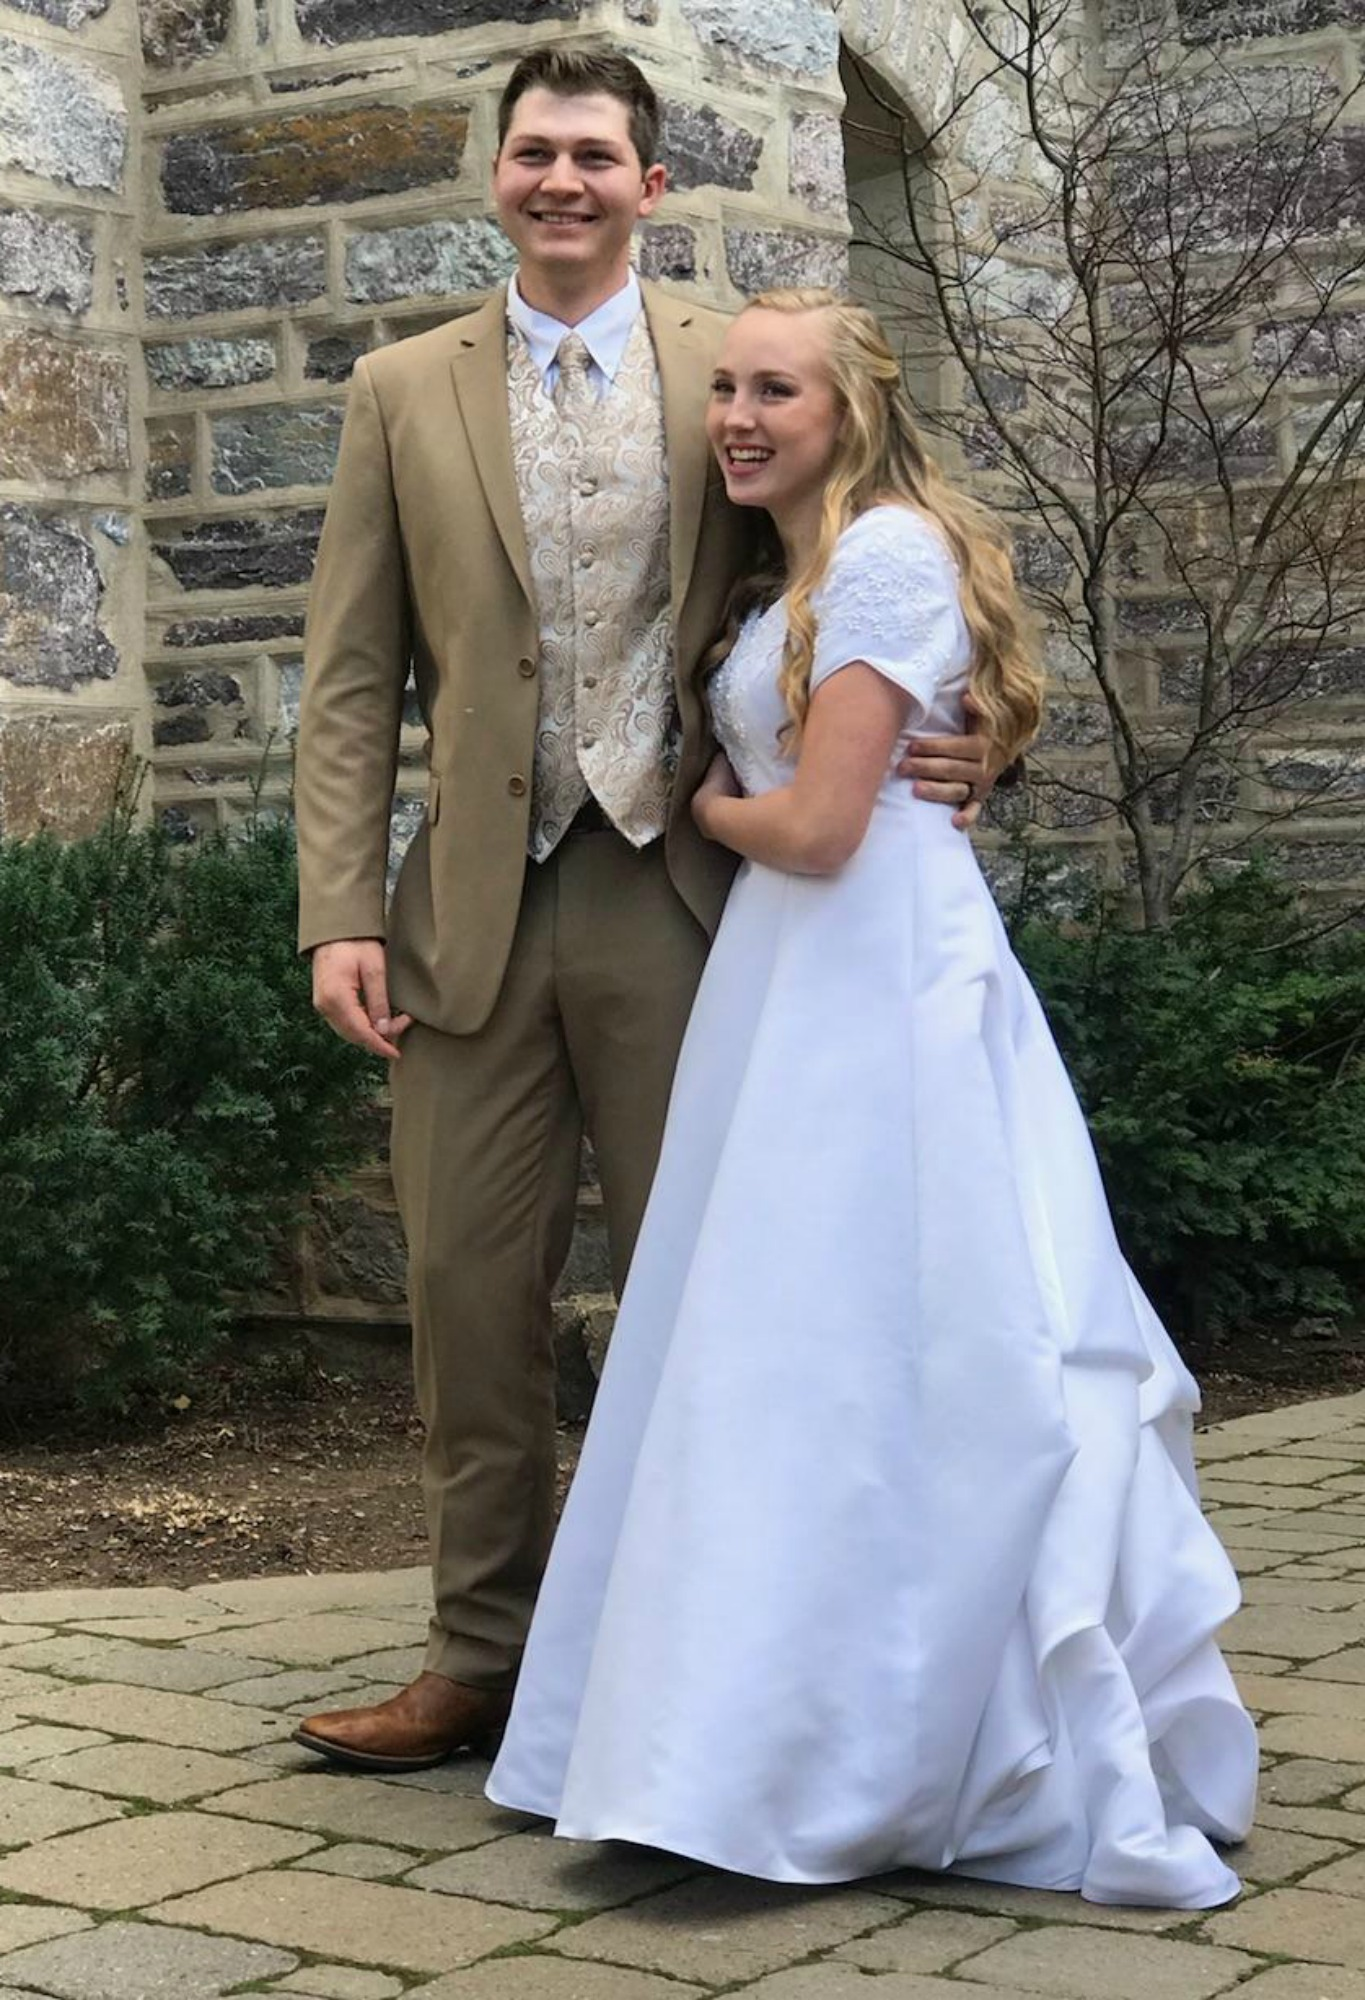 Tan Suits and Wedding Gowns